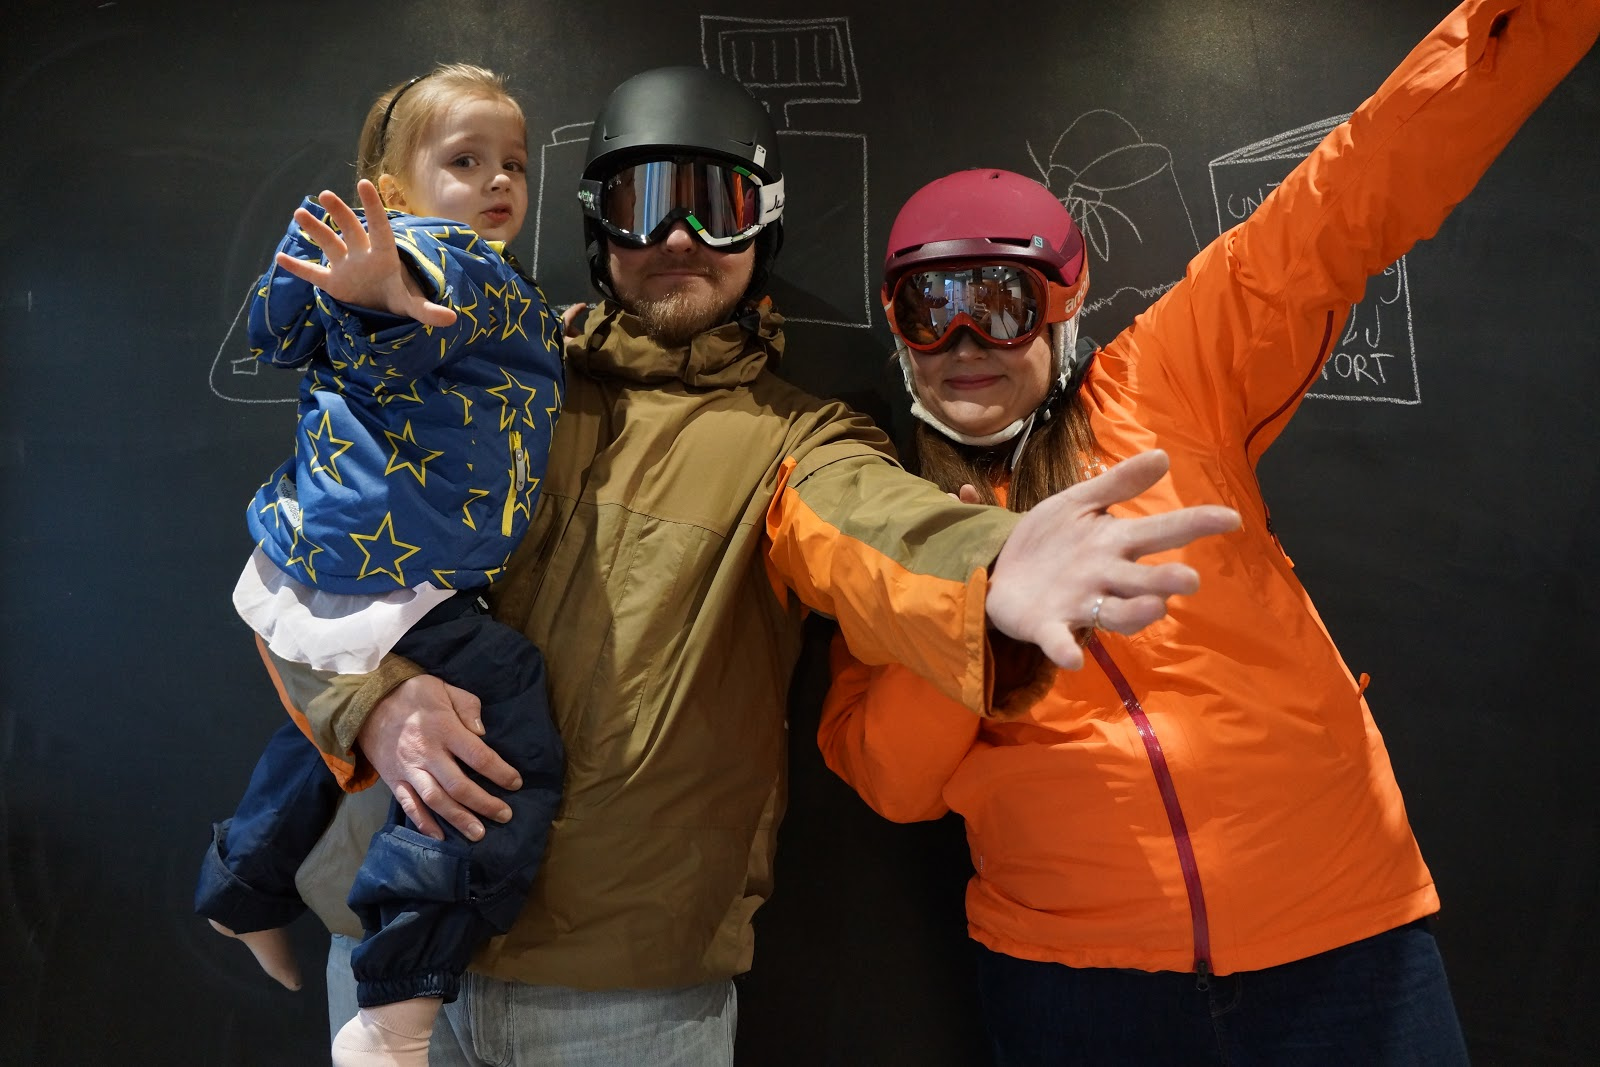 family of three wearing ski gear